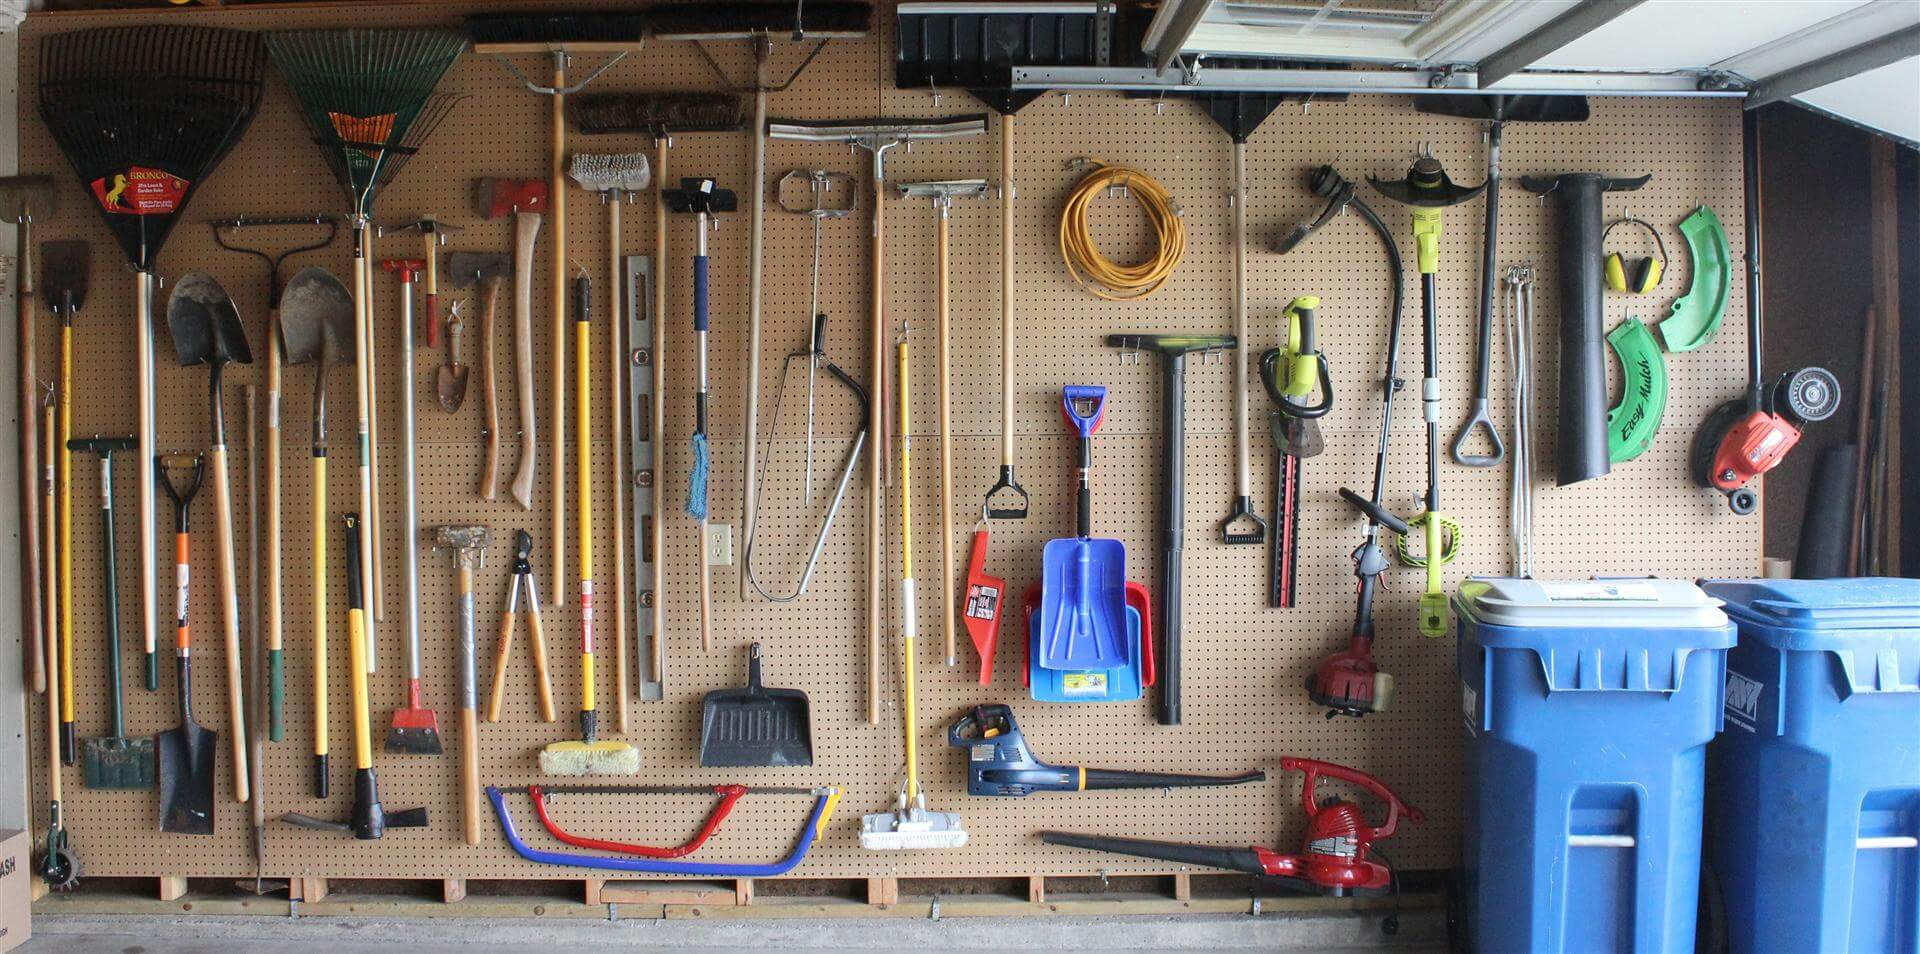 garage pegboard creativity designs inches only ideas exchange wall storage peg in using diy depth the x board